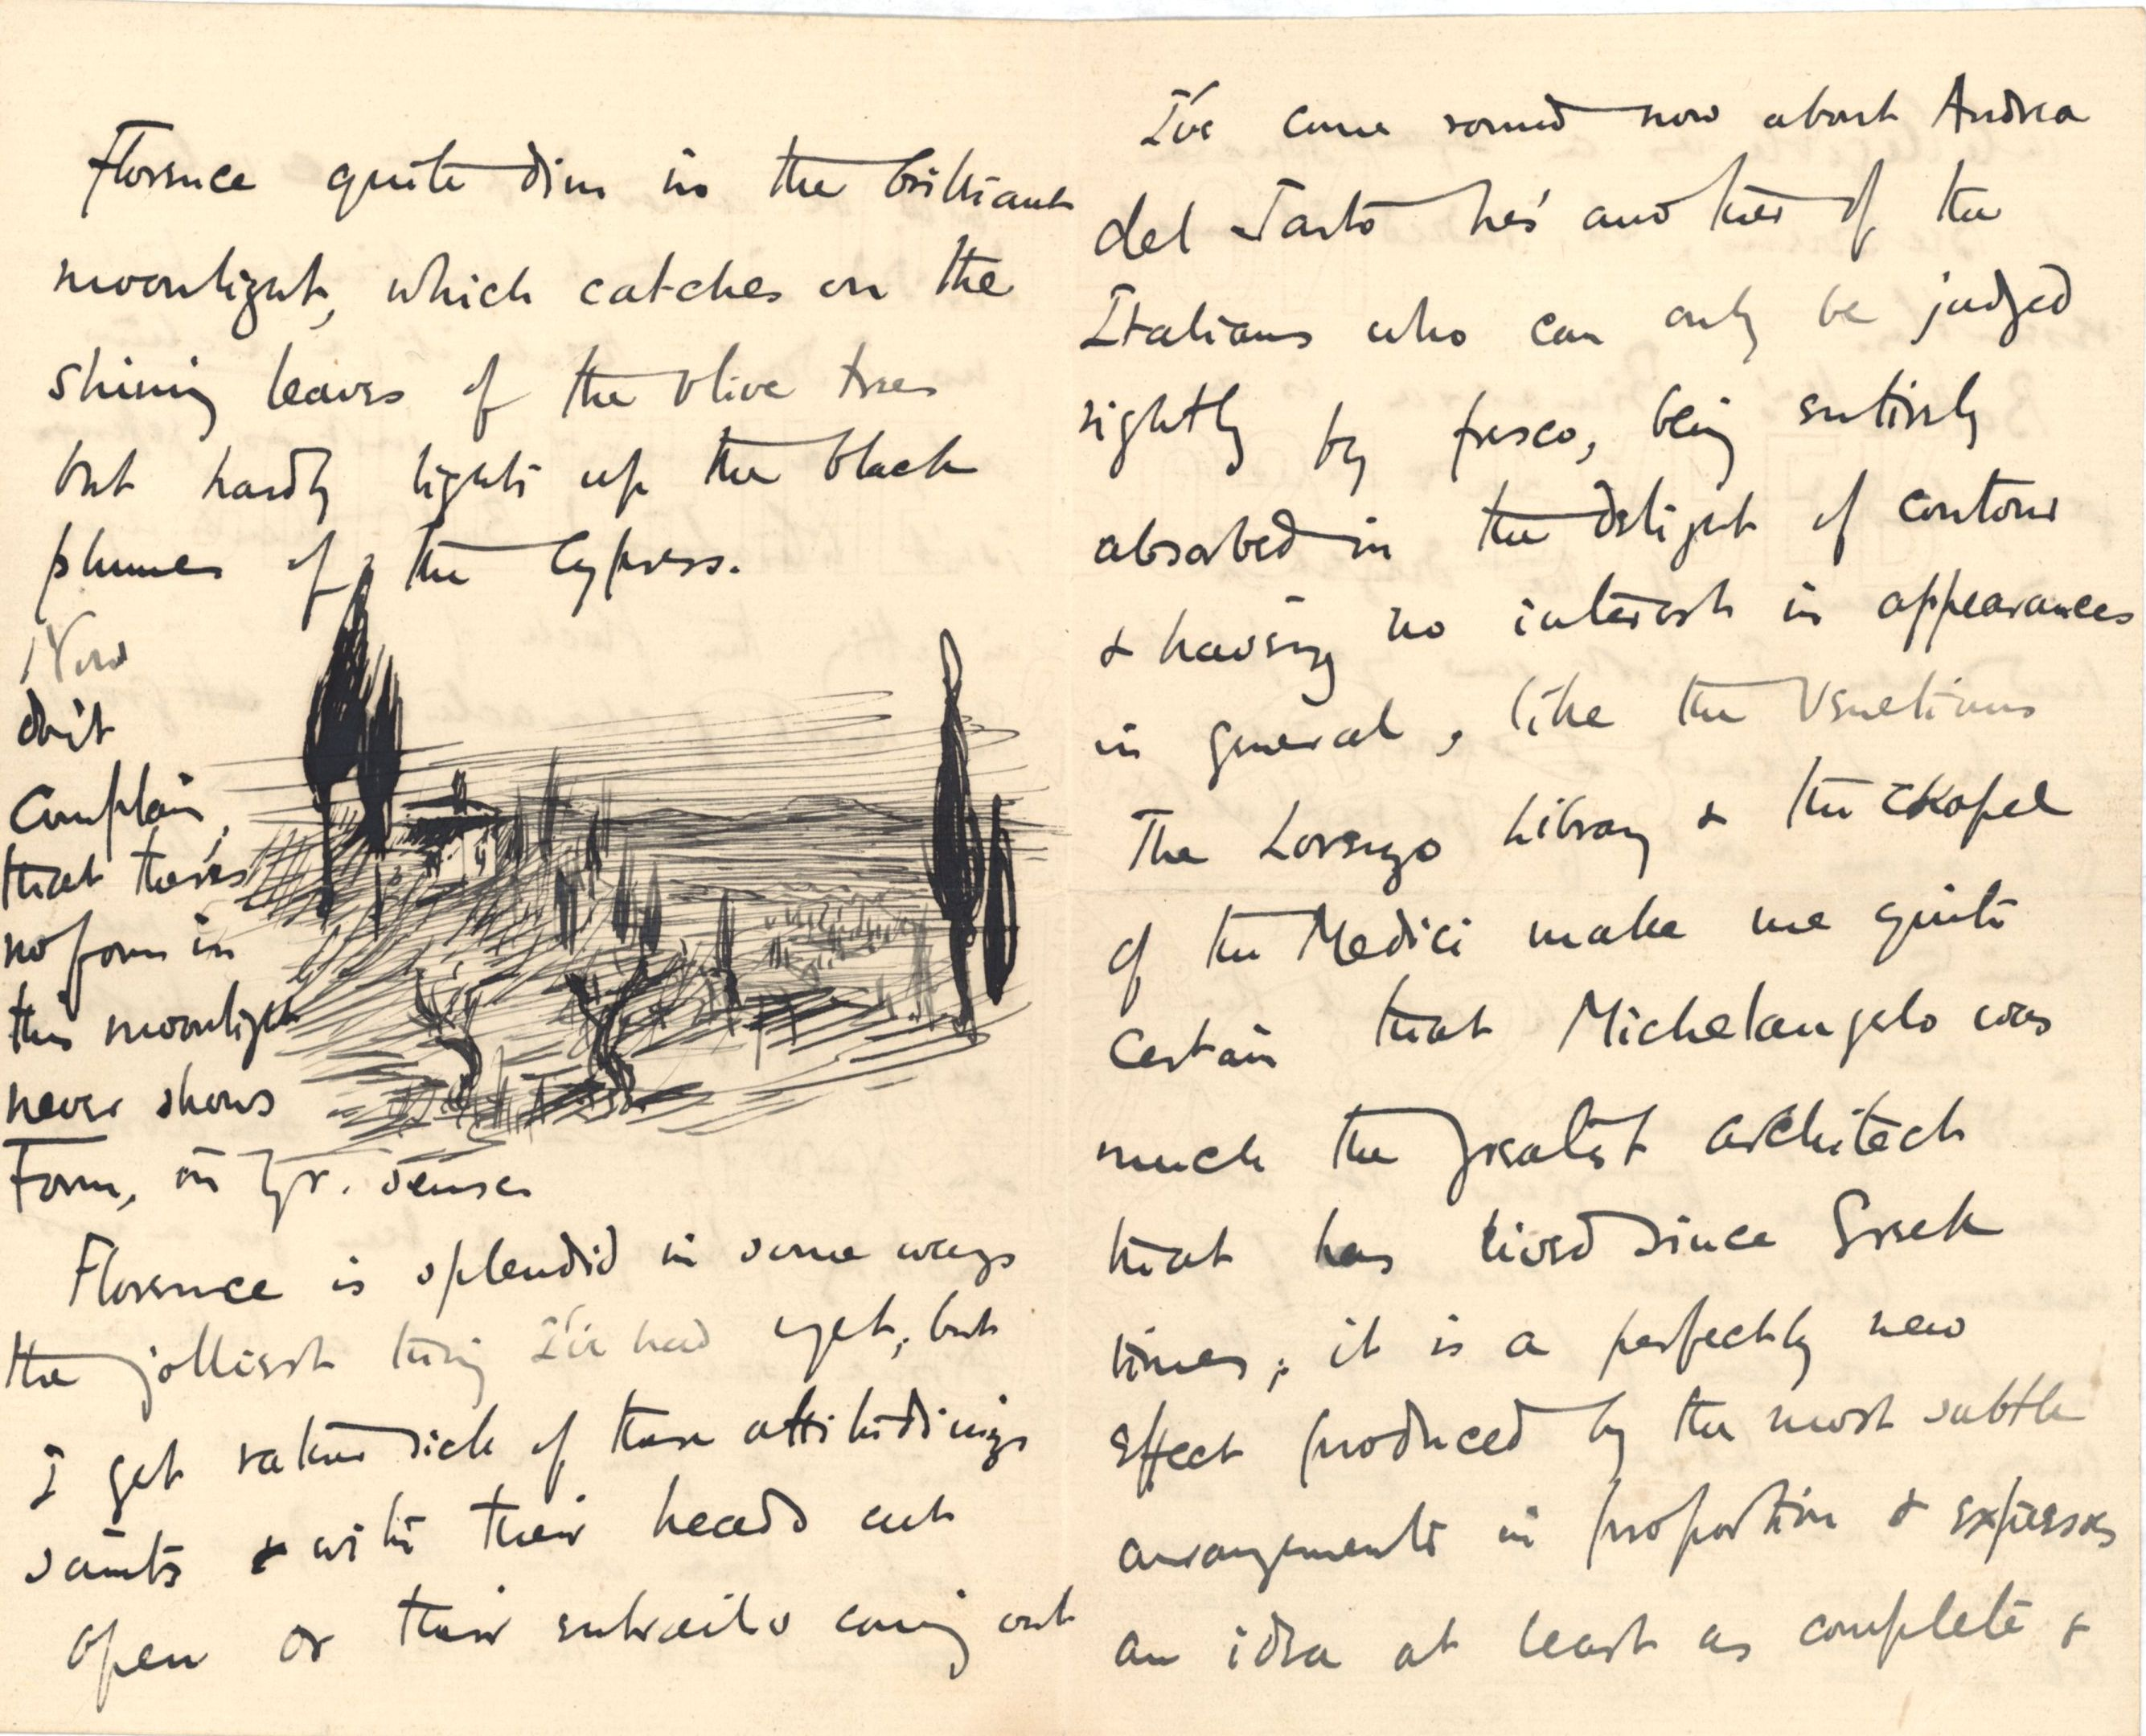 Third page of a letter from Roger Fry to Dickinson, 21 April 1891, regarding Florence. [REF/3/46/3]